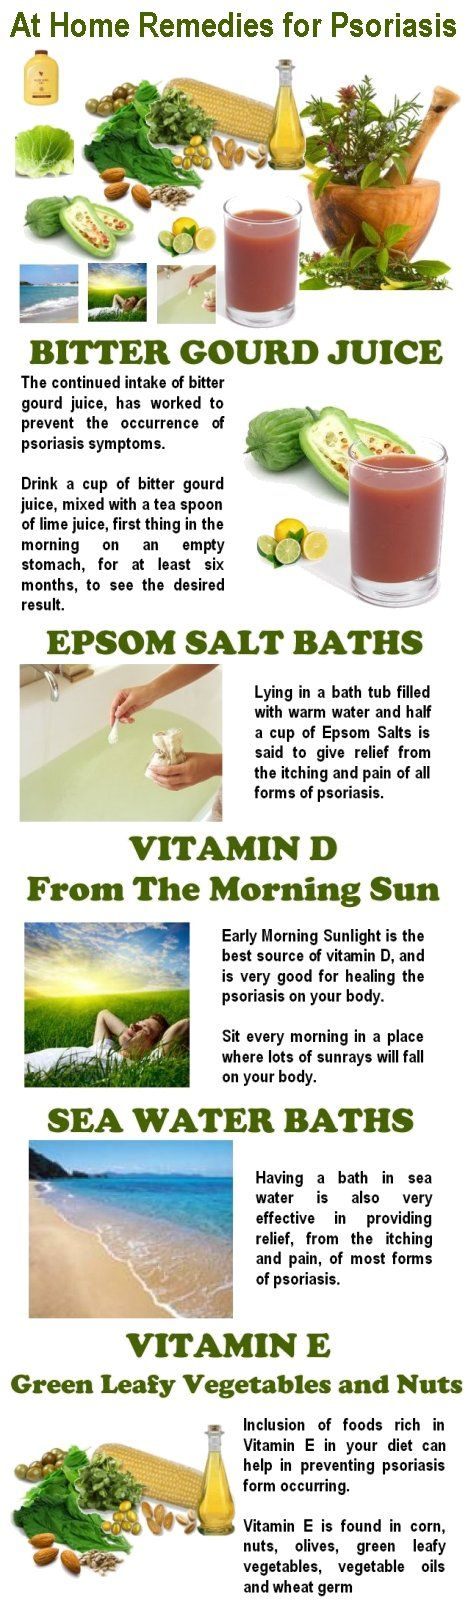 There may be no cure for Psoriasis, but that doesn't mean we can't prevent it from spreading and effecting our lives. At Home Remedies for Psoriasis - Recognized at home remedies for psoriasis can be said to be the only true natural treatment for psoriasis not all natural and medical remedies work for everyone so try what works best for you ^_^